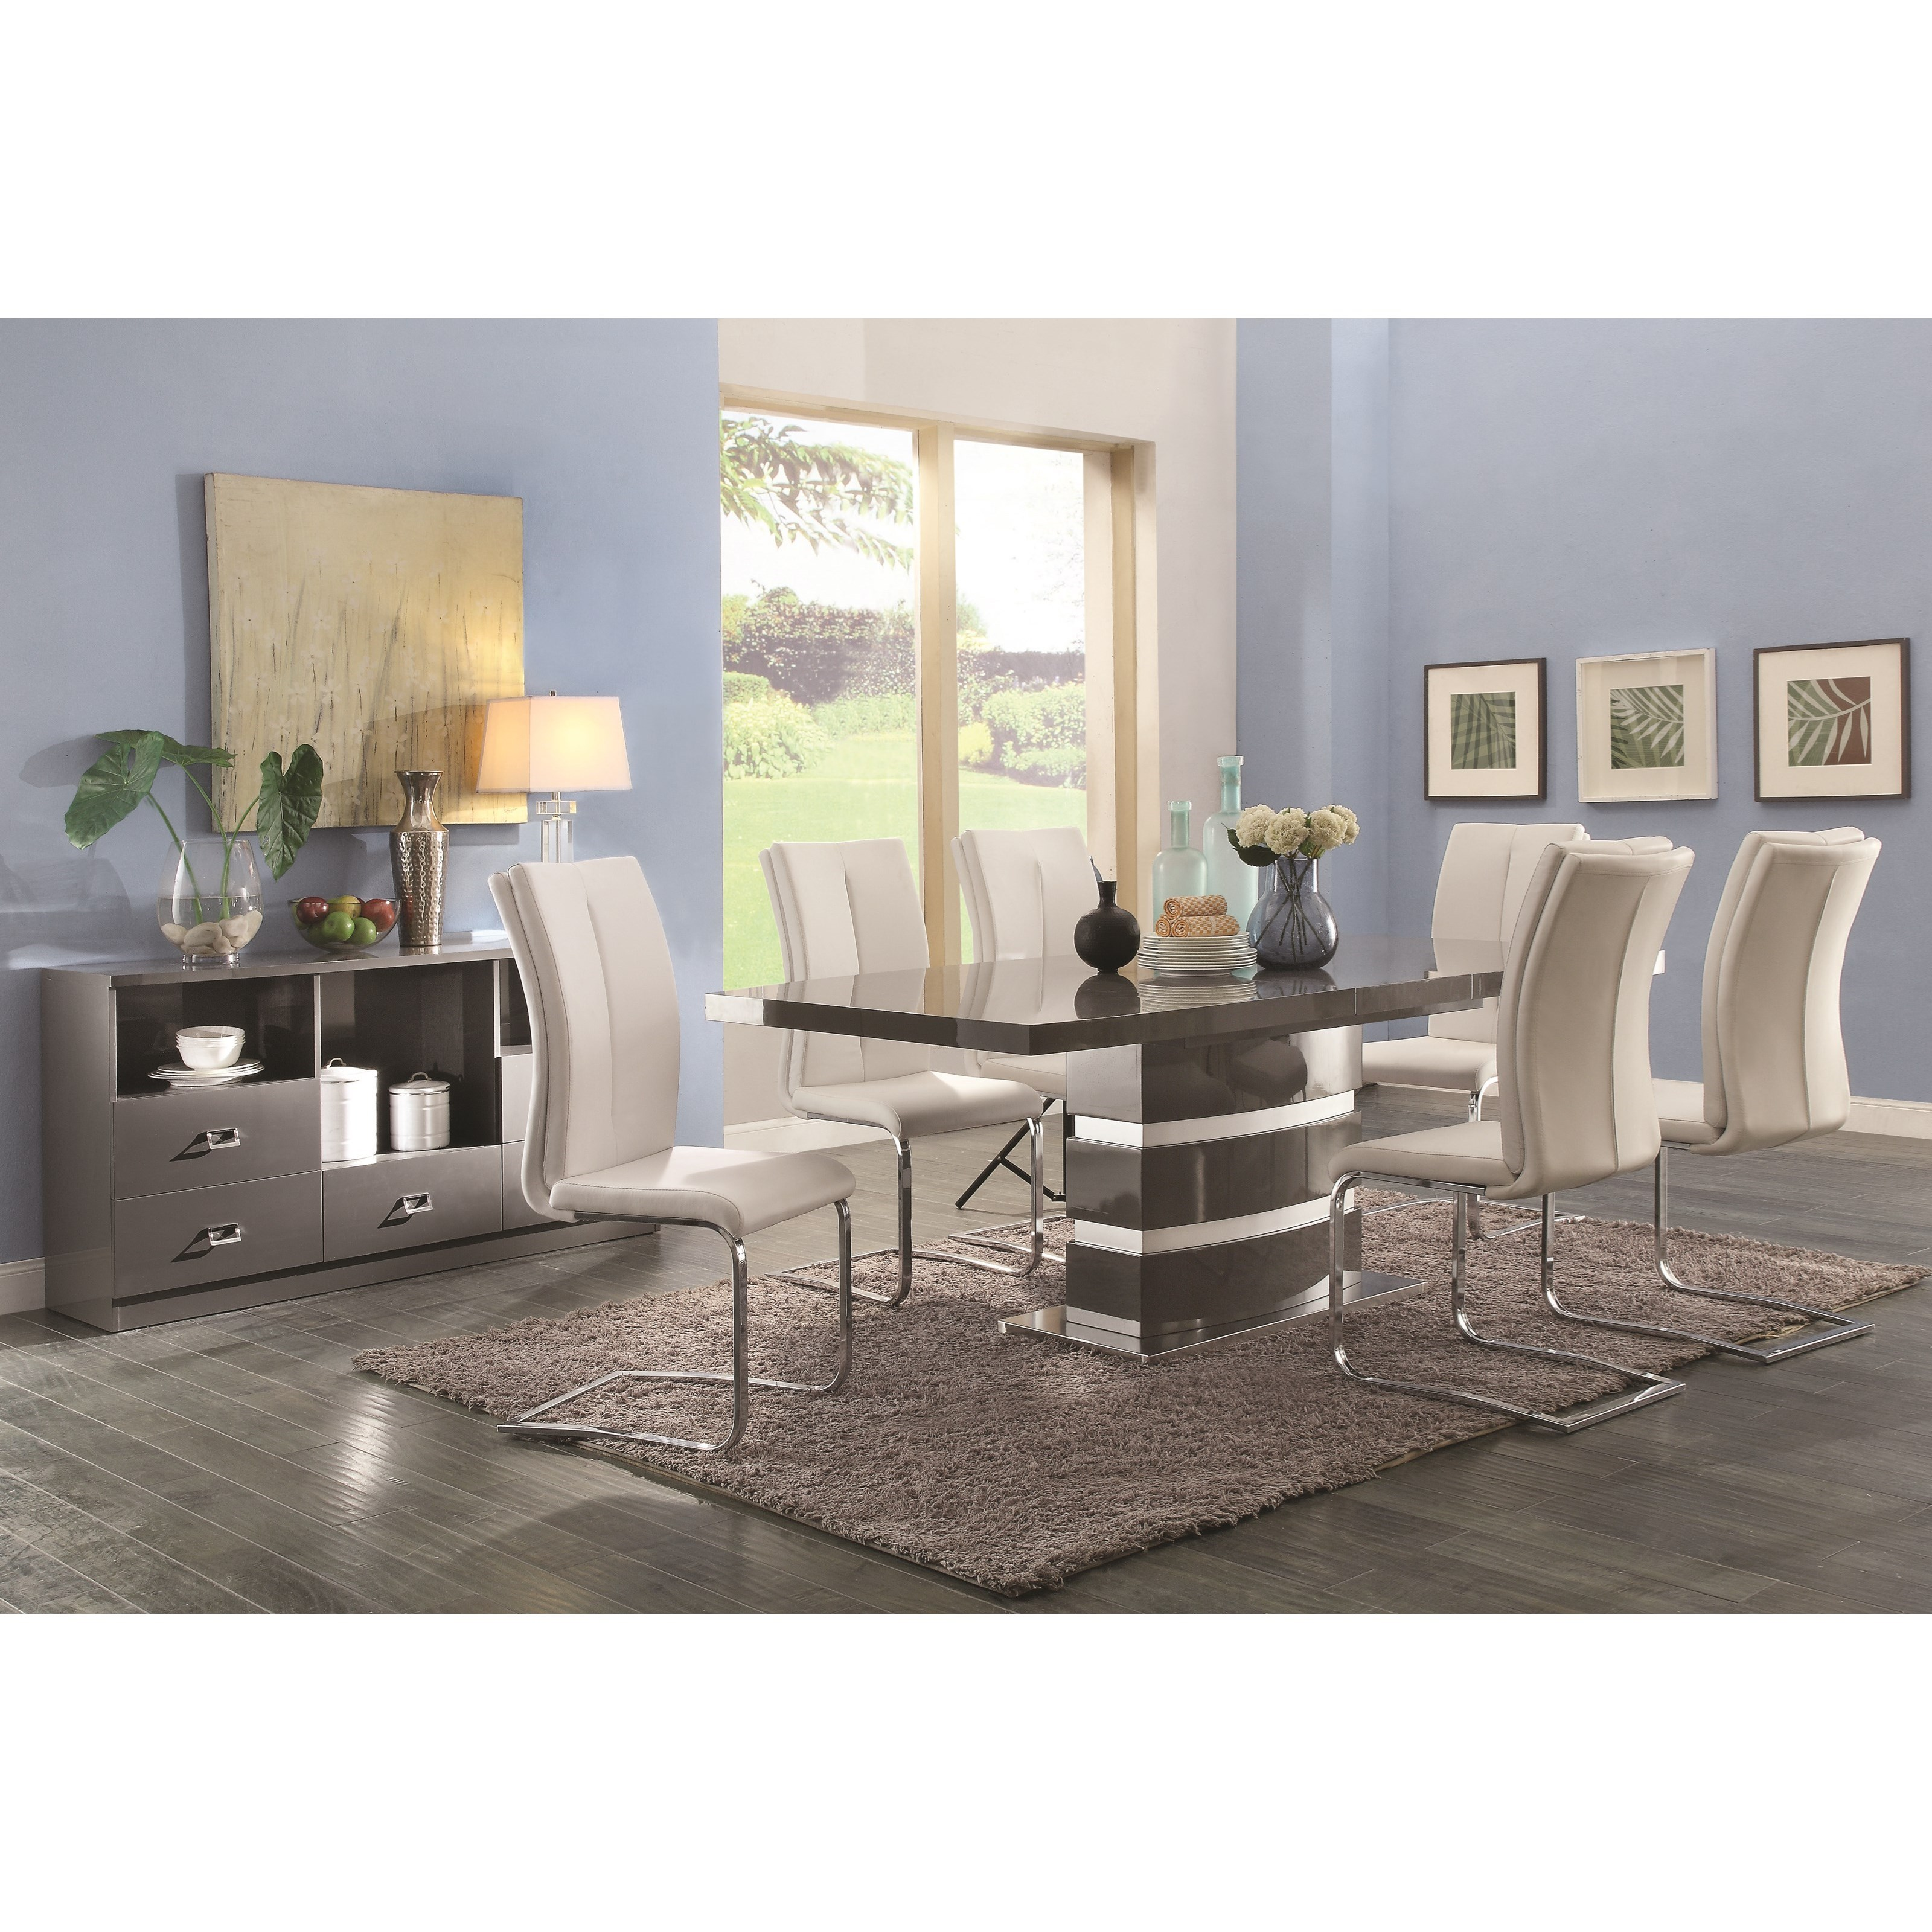 Coaster Lowry Casual Dining Room Group - Item Number: 107001+6x102815+107005